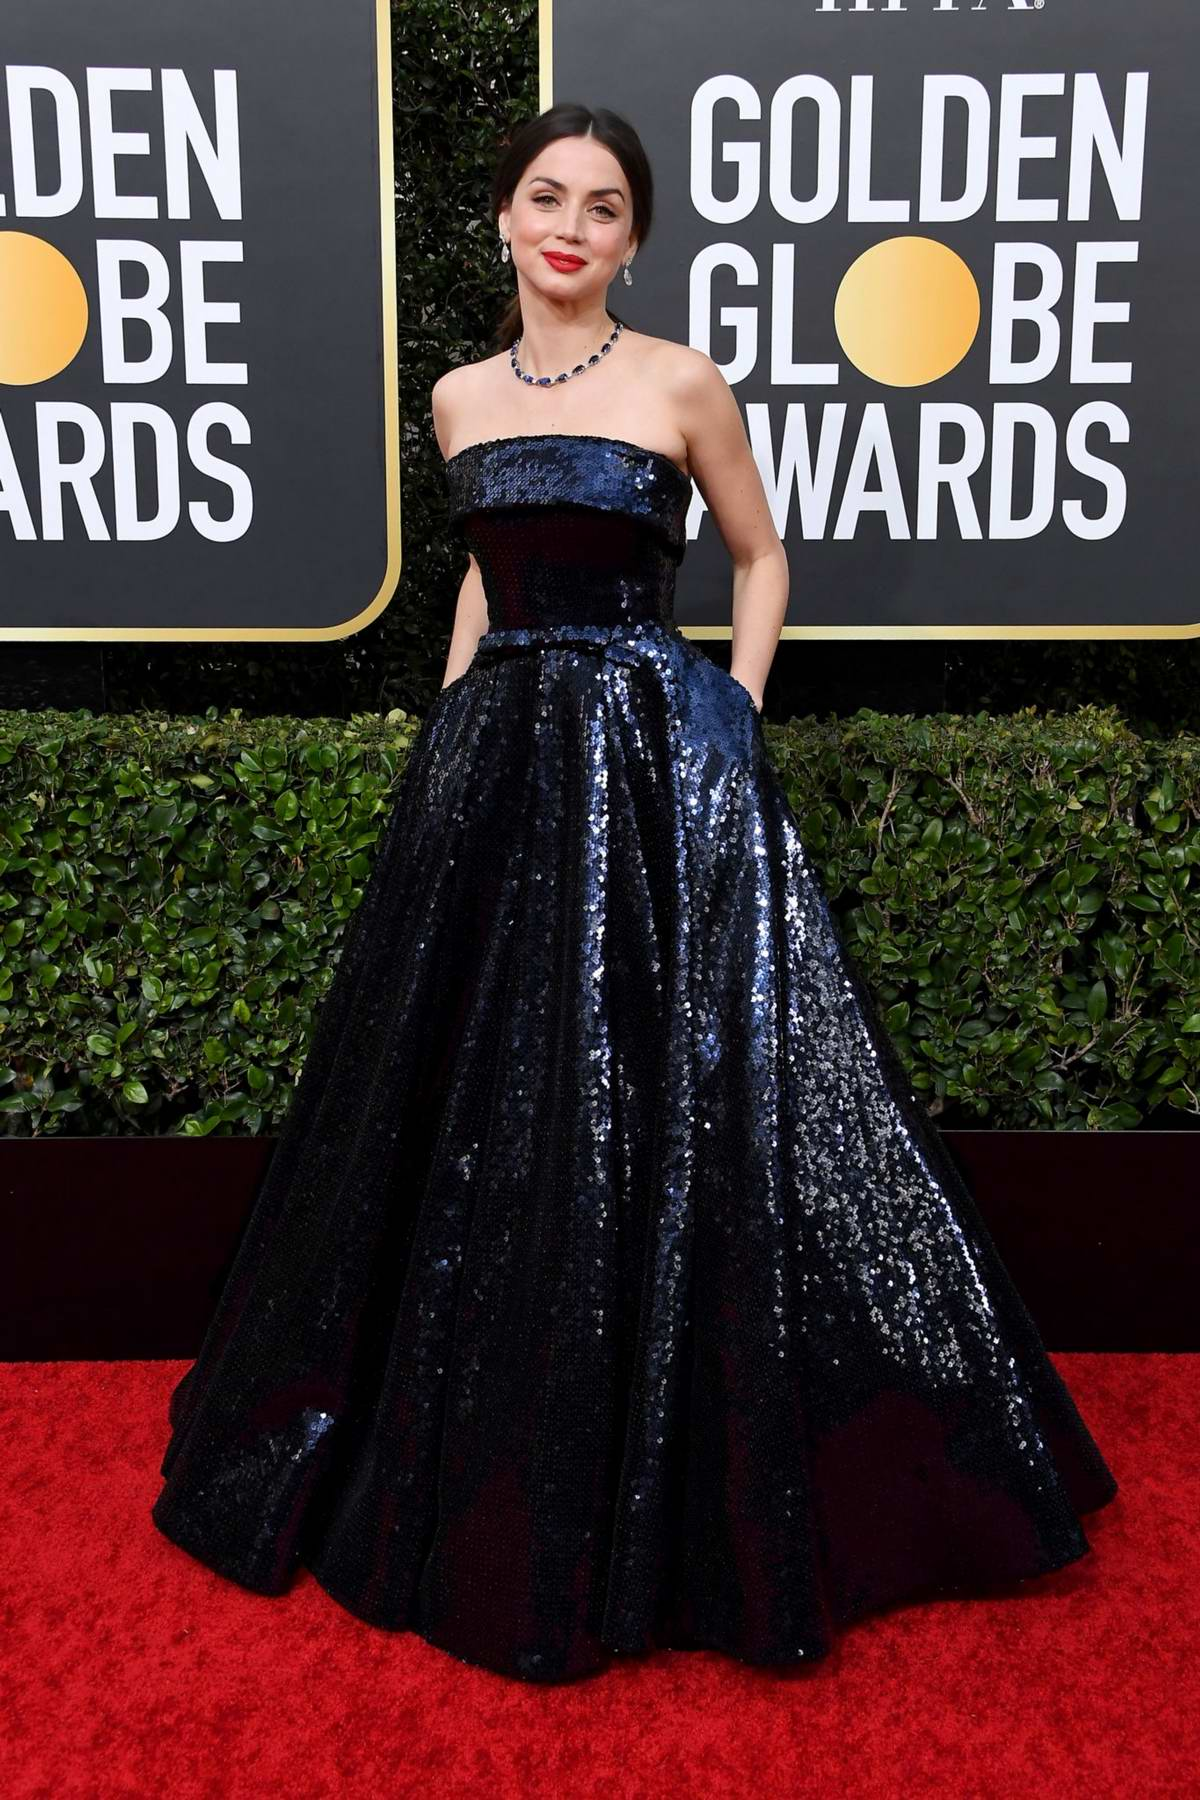 Ana de Armas attends the 77th Annual Golden Globe Awards at The Beverly Hilton Hotel in Beverly Hills, California